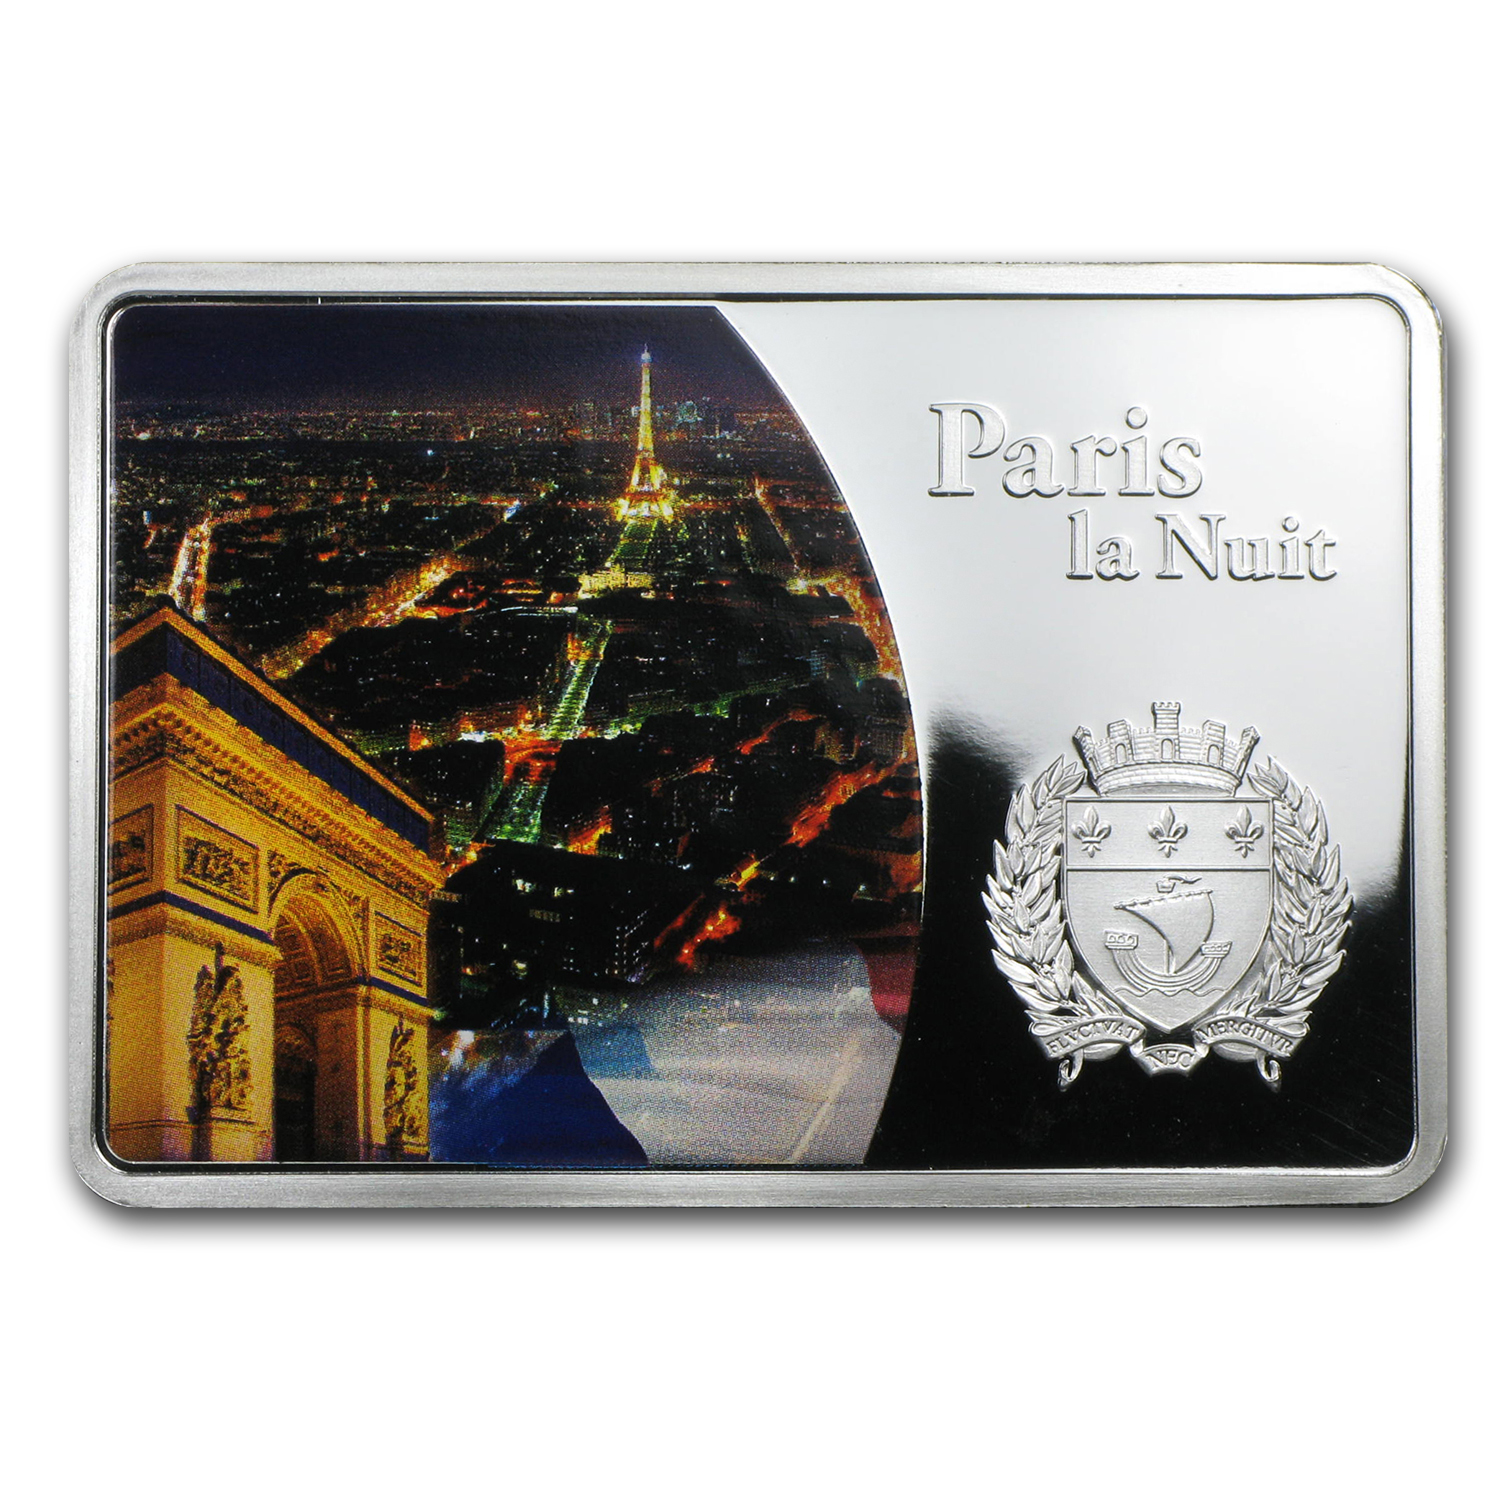 2012 Fiji 1 oz Proof Silver $10 Cities at Night Paris